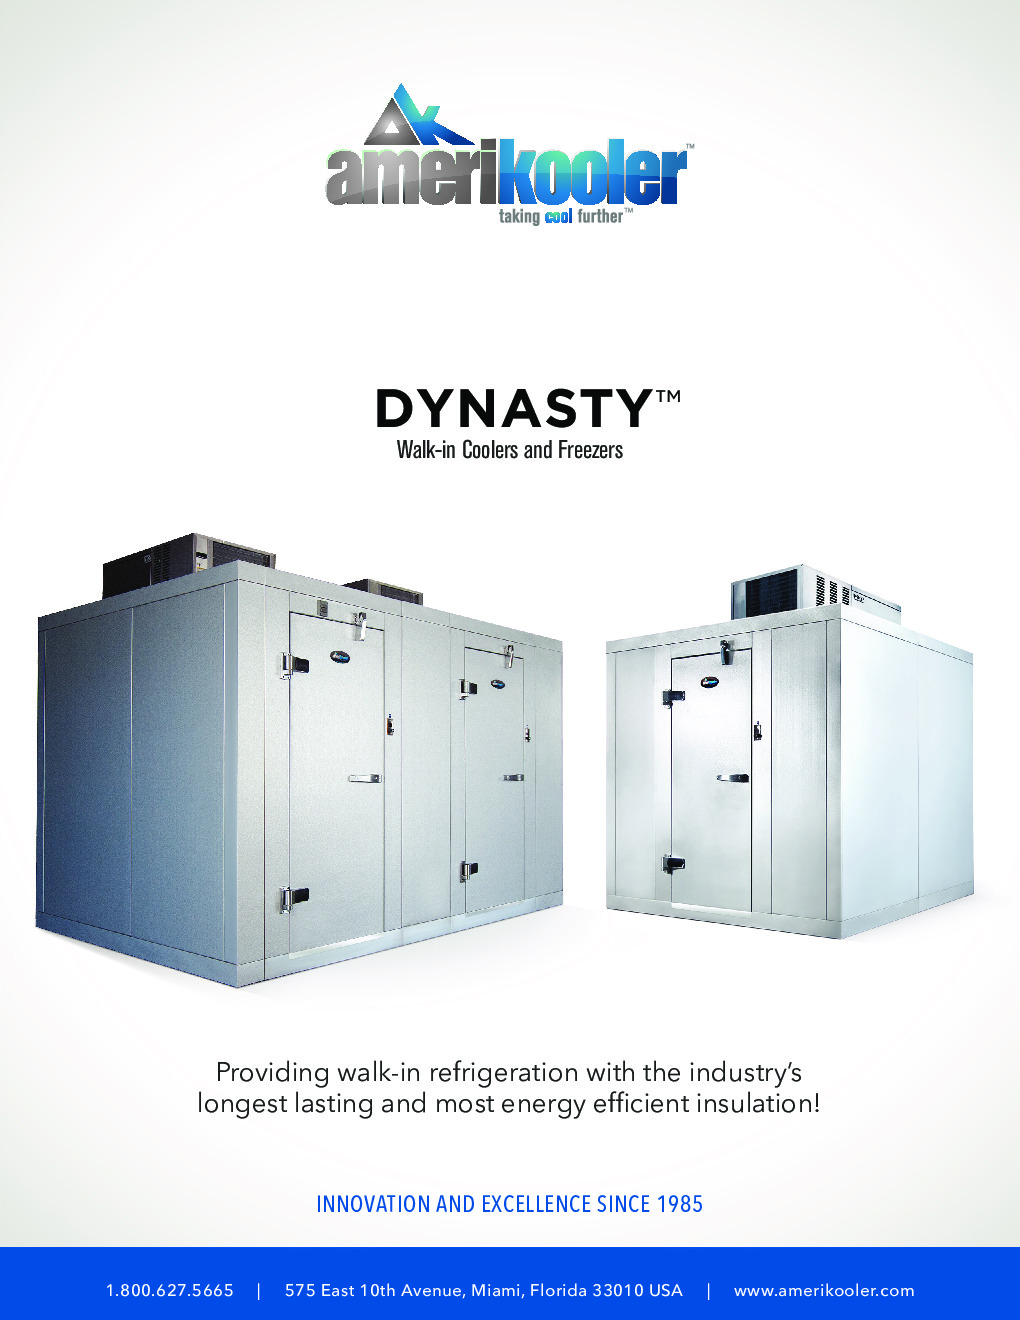 AmeriKooler DW101377F-4/9-SC 10' X 13' Walk-In Cooler, 9' L Cooler with Floor and 4' L Freezer, Self Contained